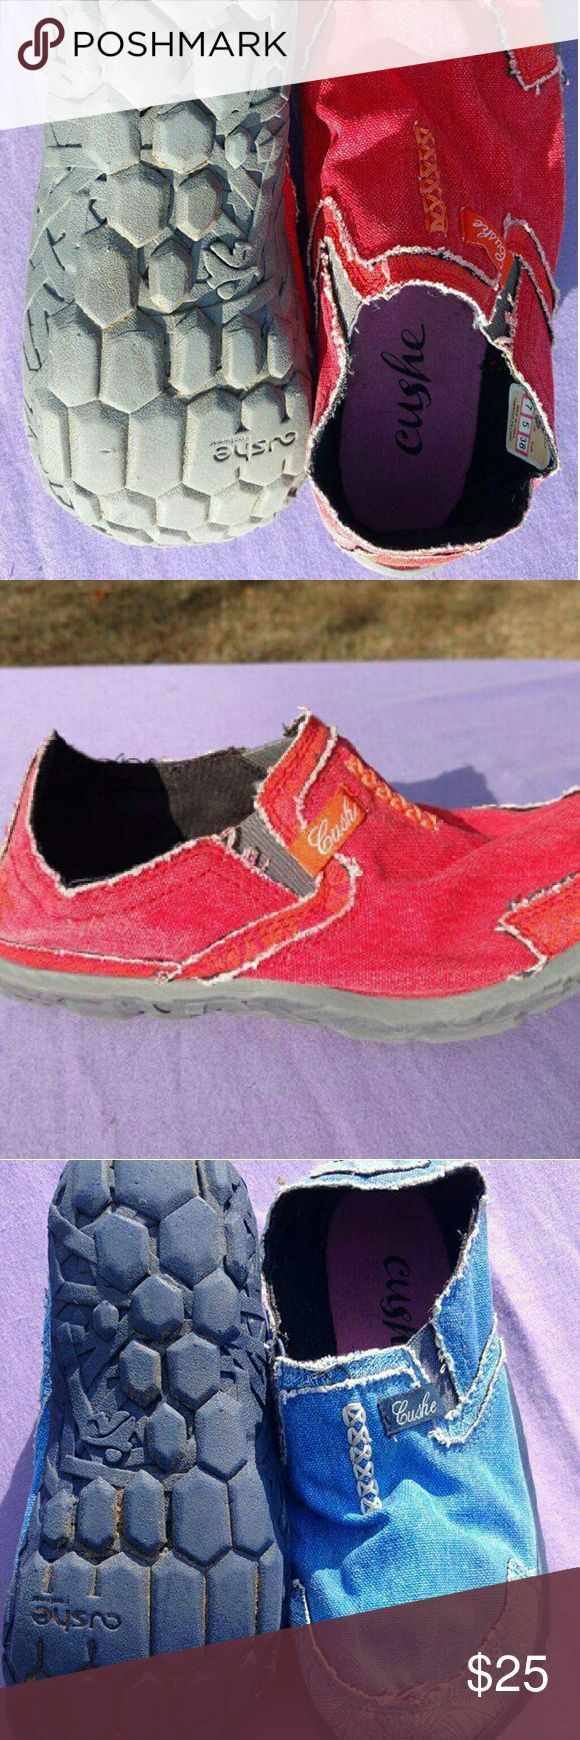 Cushe Slip-On Shoes Women's Size 7 Lot of 2 Pair Here are 2 pair of Cushe Slip-On Shoes: 1 Red Pair, 1 Blue Pair. Both are in good condition and have been cleaned, due to the tread type all the dirt would not come off the blue pair. Cushe  Shoes Flats & Loafers